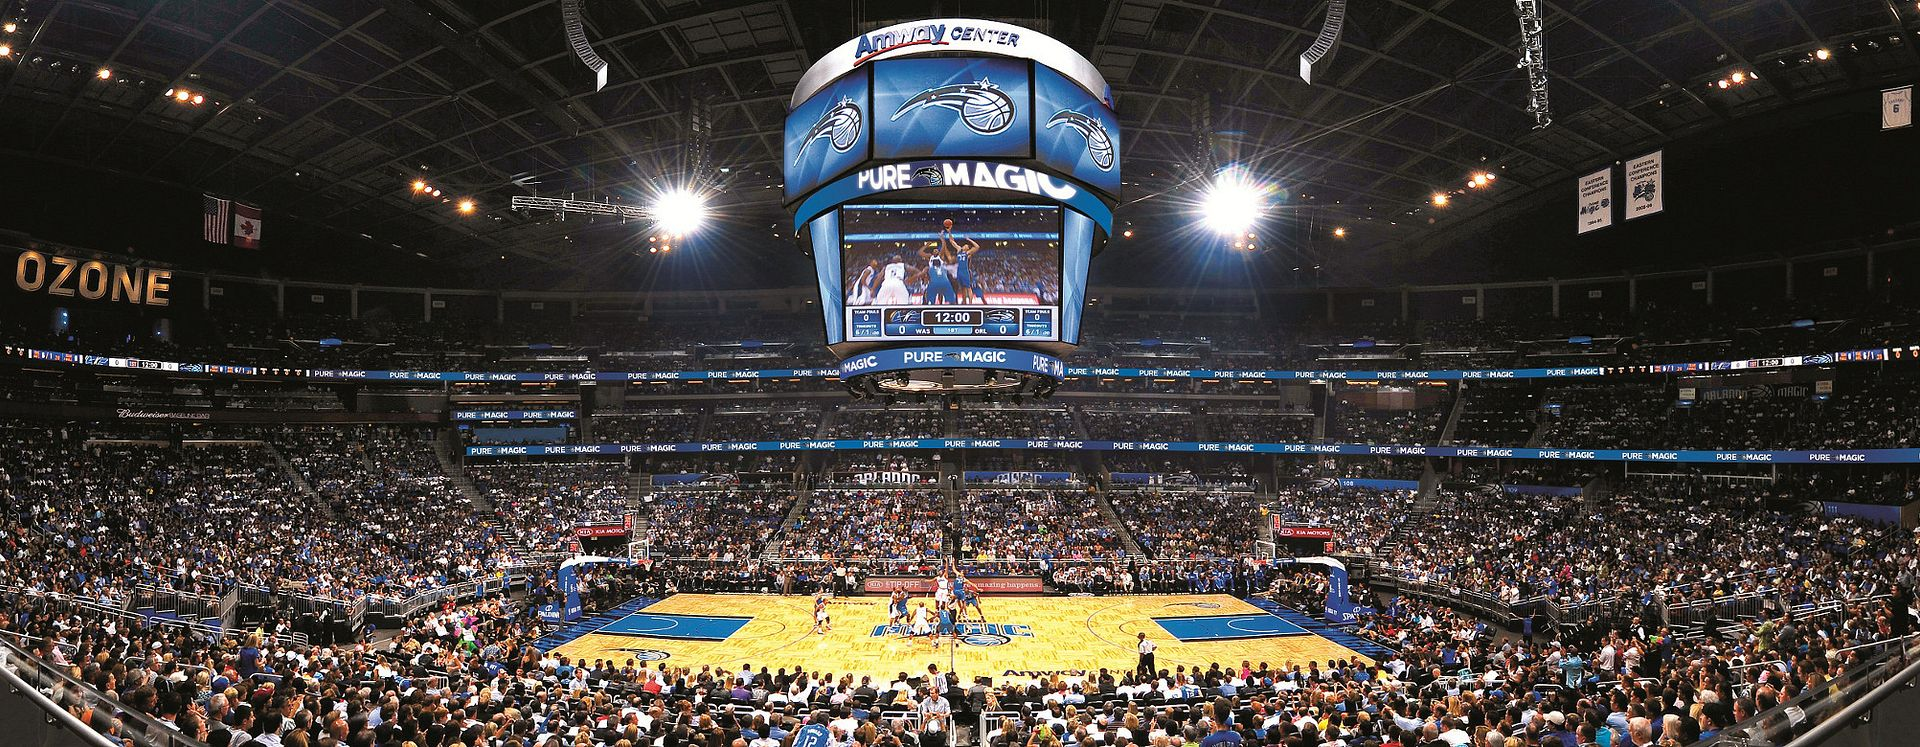 Orlando Magic, Orlando's basketball team playing at Amway Center